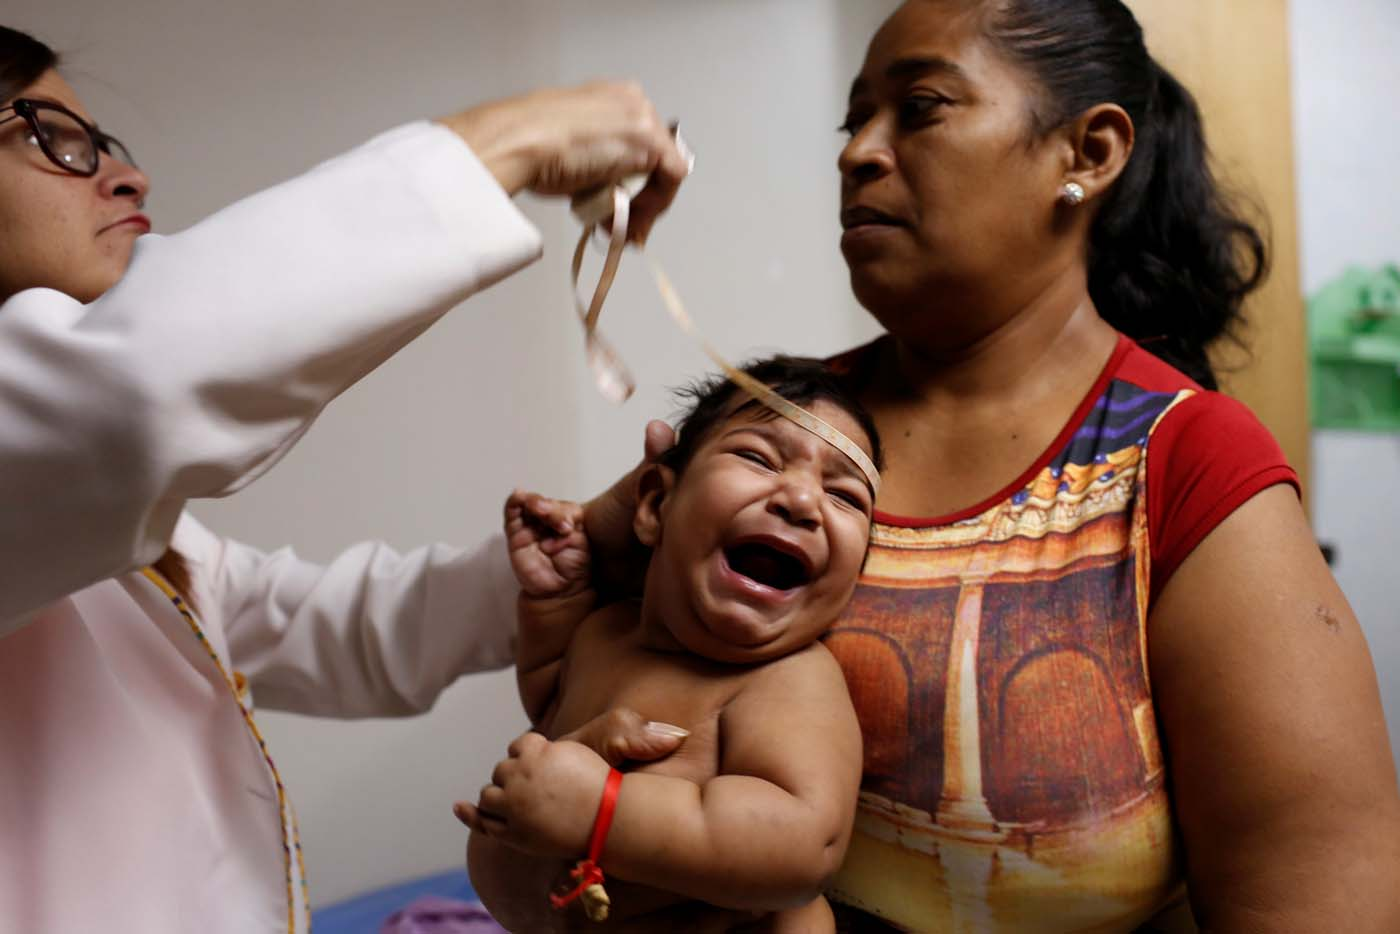 "Iberis Vargas (R), holds her 7-month-old daughter, Geovelis Ramos, a neurological patient being treated with anticonvulsants, while an specialist examines her in a clinic in La Guaira, Venezuela February 4, 2017. REUTERS/Carlos Garcia Rawlins    SEARCH ""EPILEPSY CARACAS"" FOR THIS STORY. SEARCH ""WIDER IMAGE"" FOR ALL STORIES."